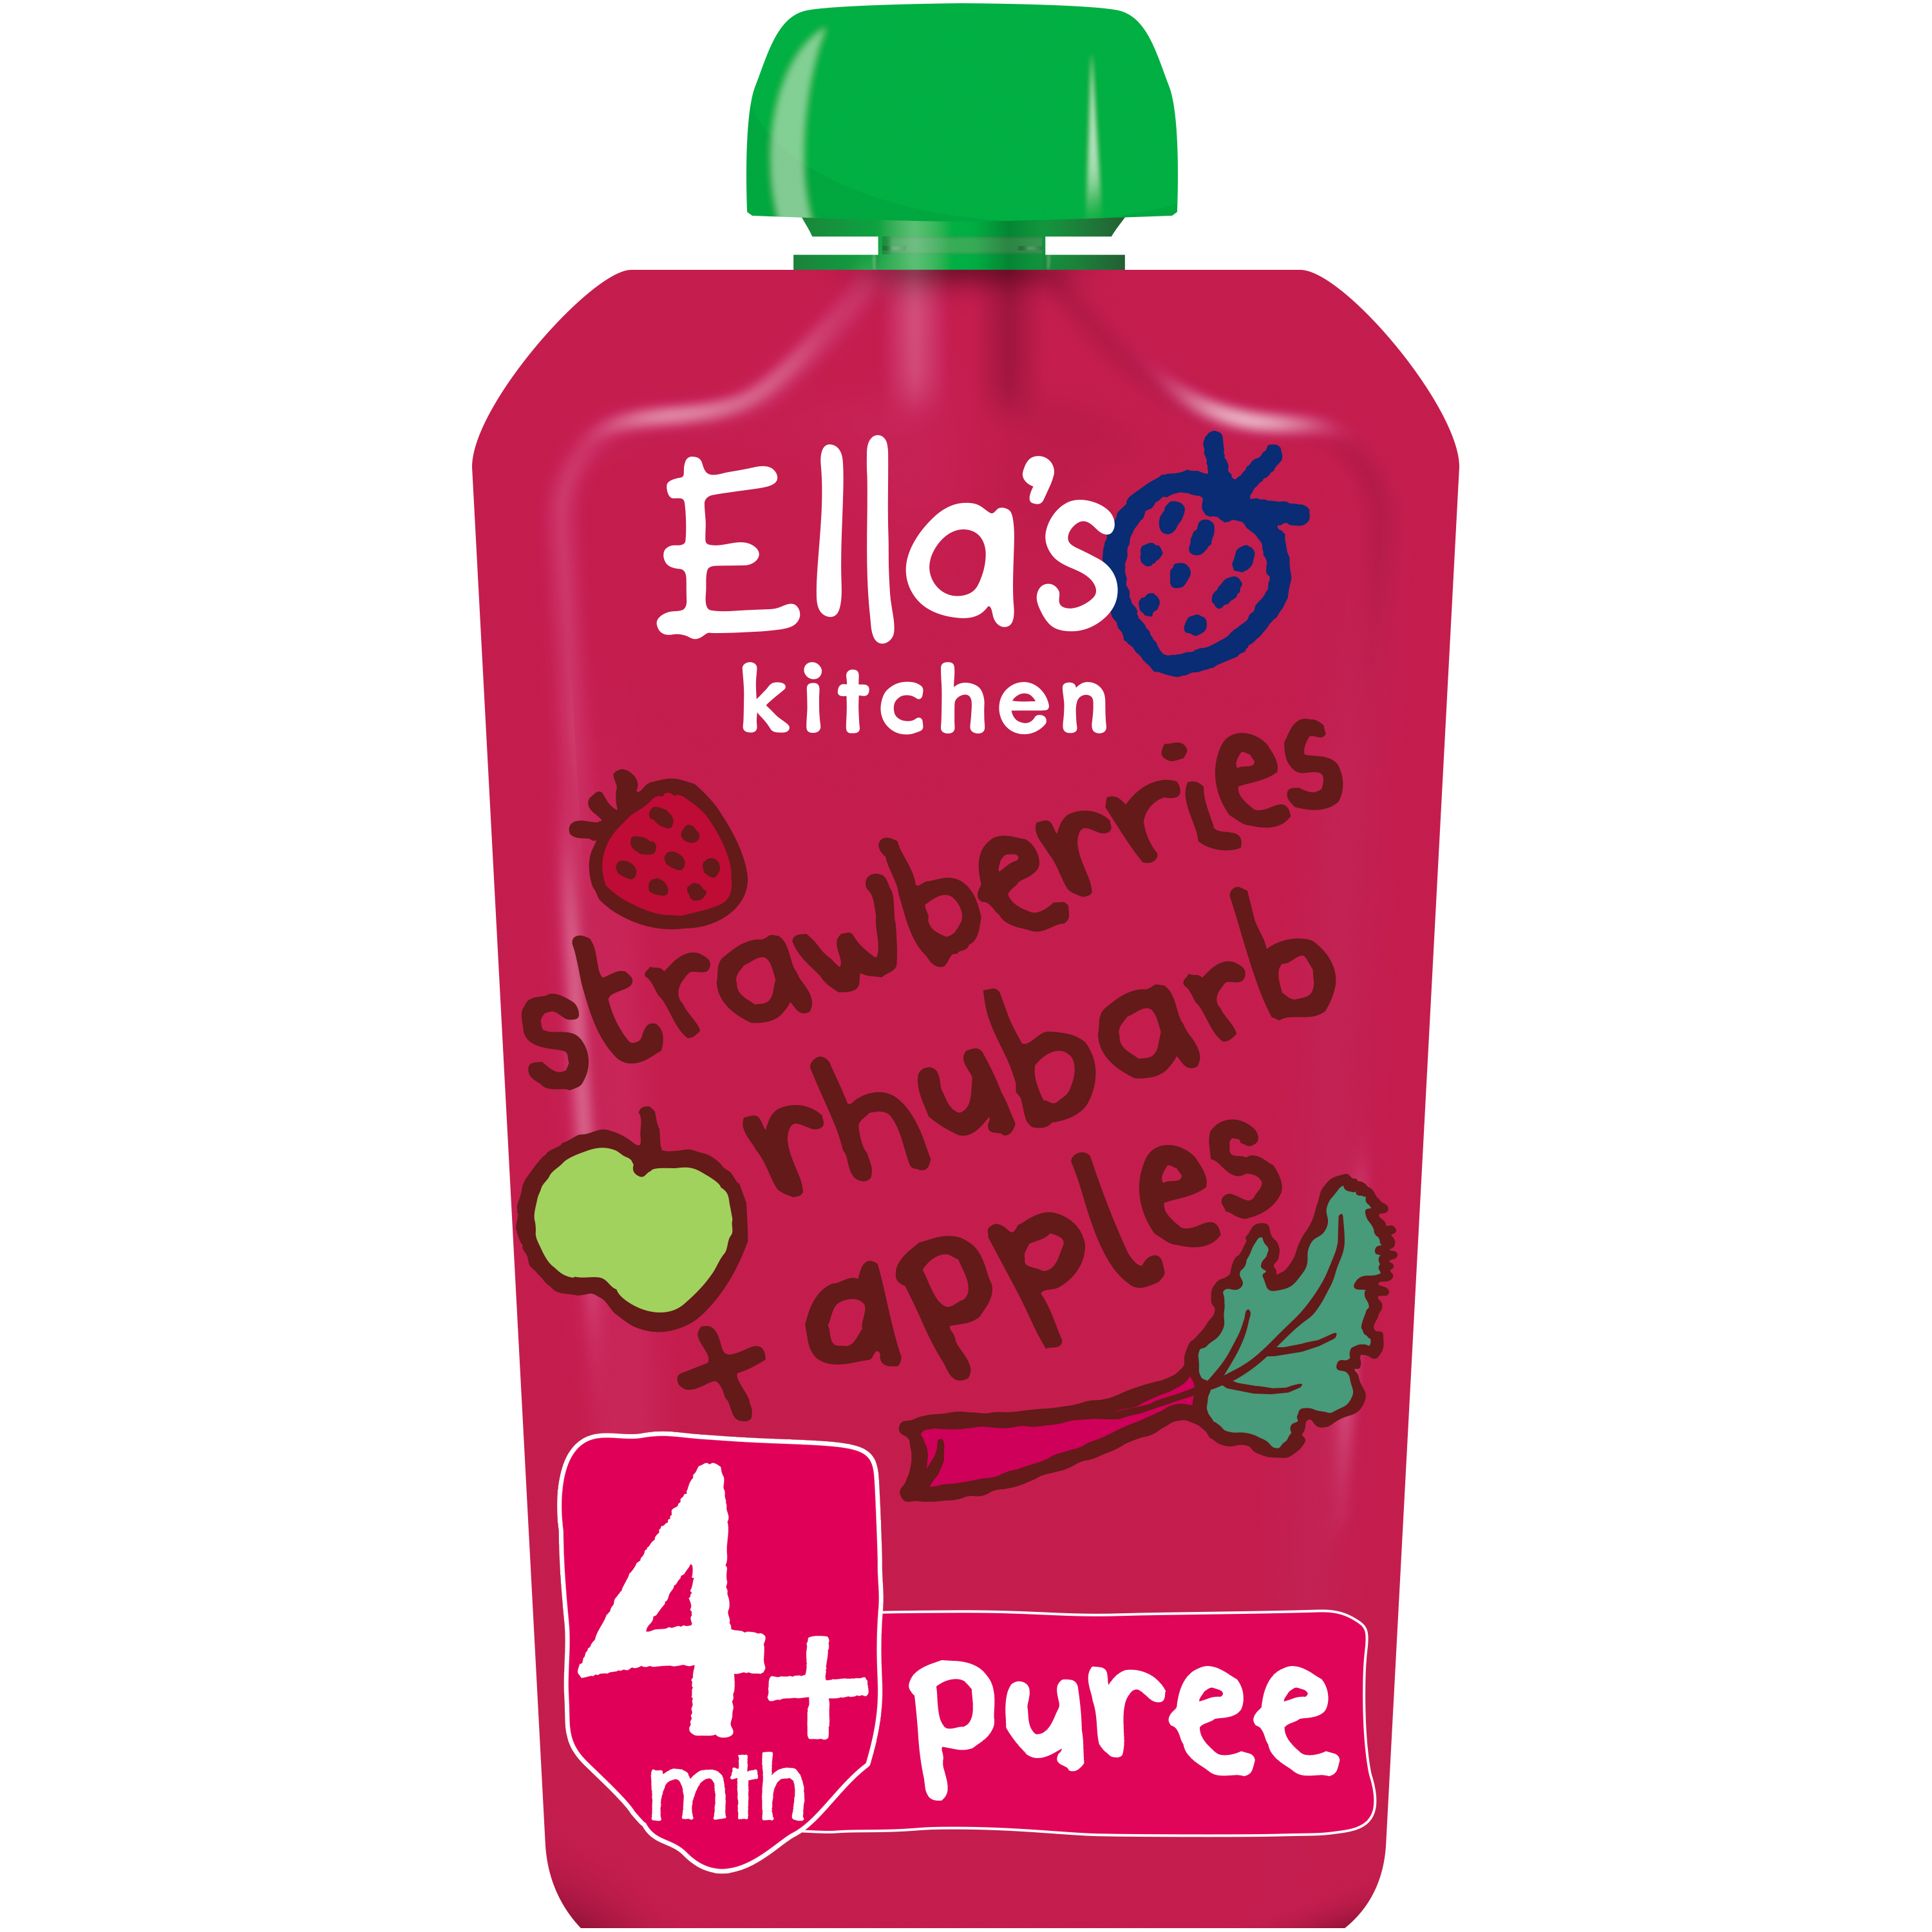 Ellas kitchen strawberries rhubarb apples pouch front of pack O